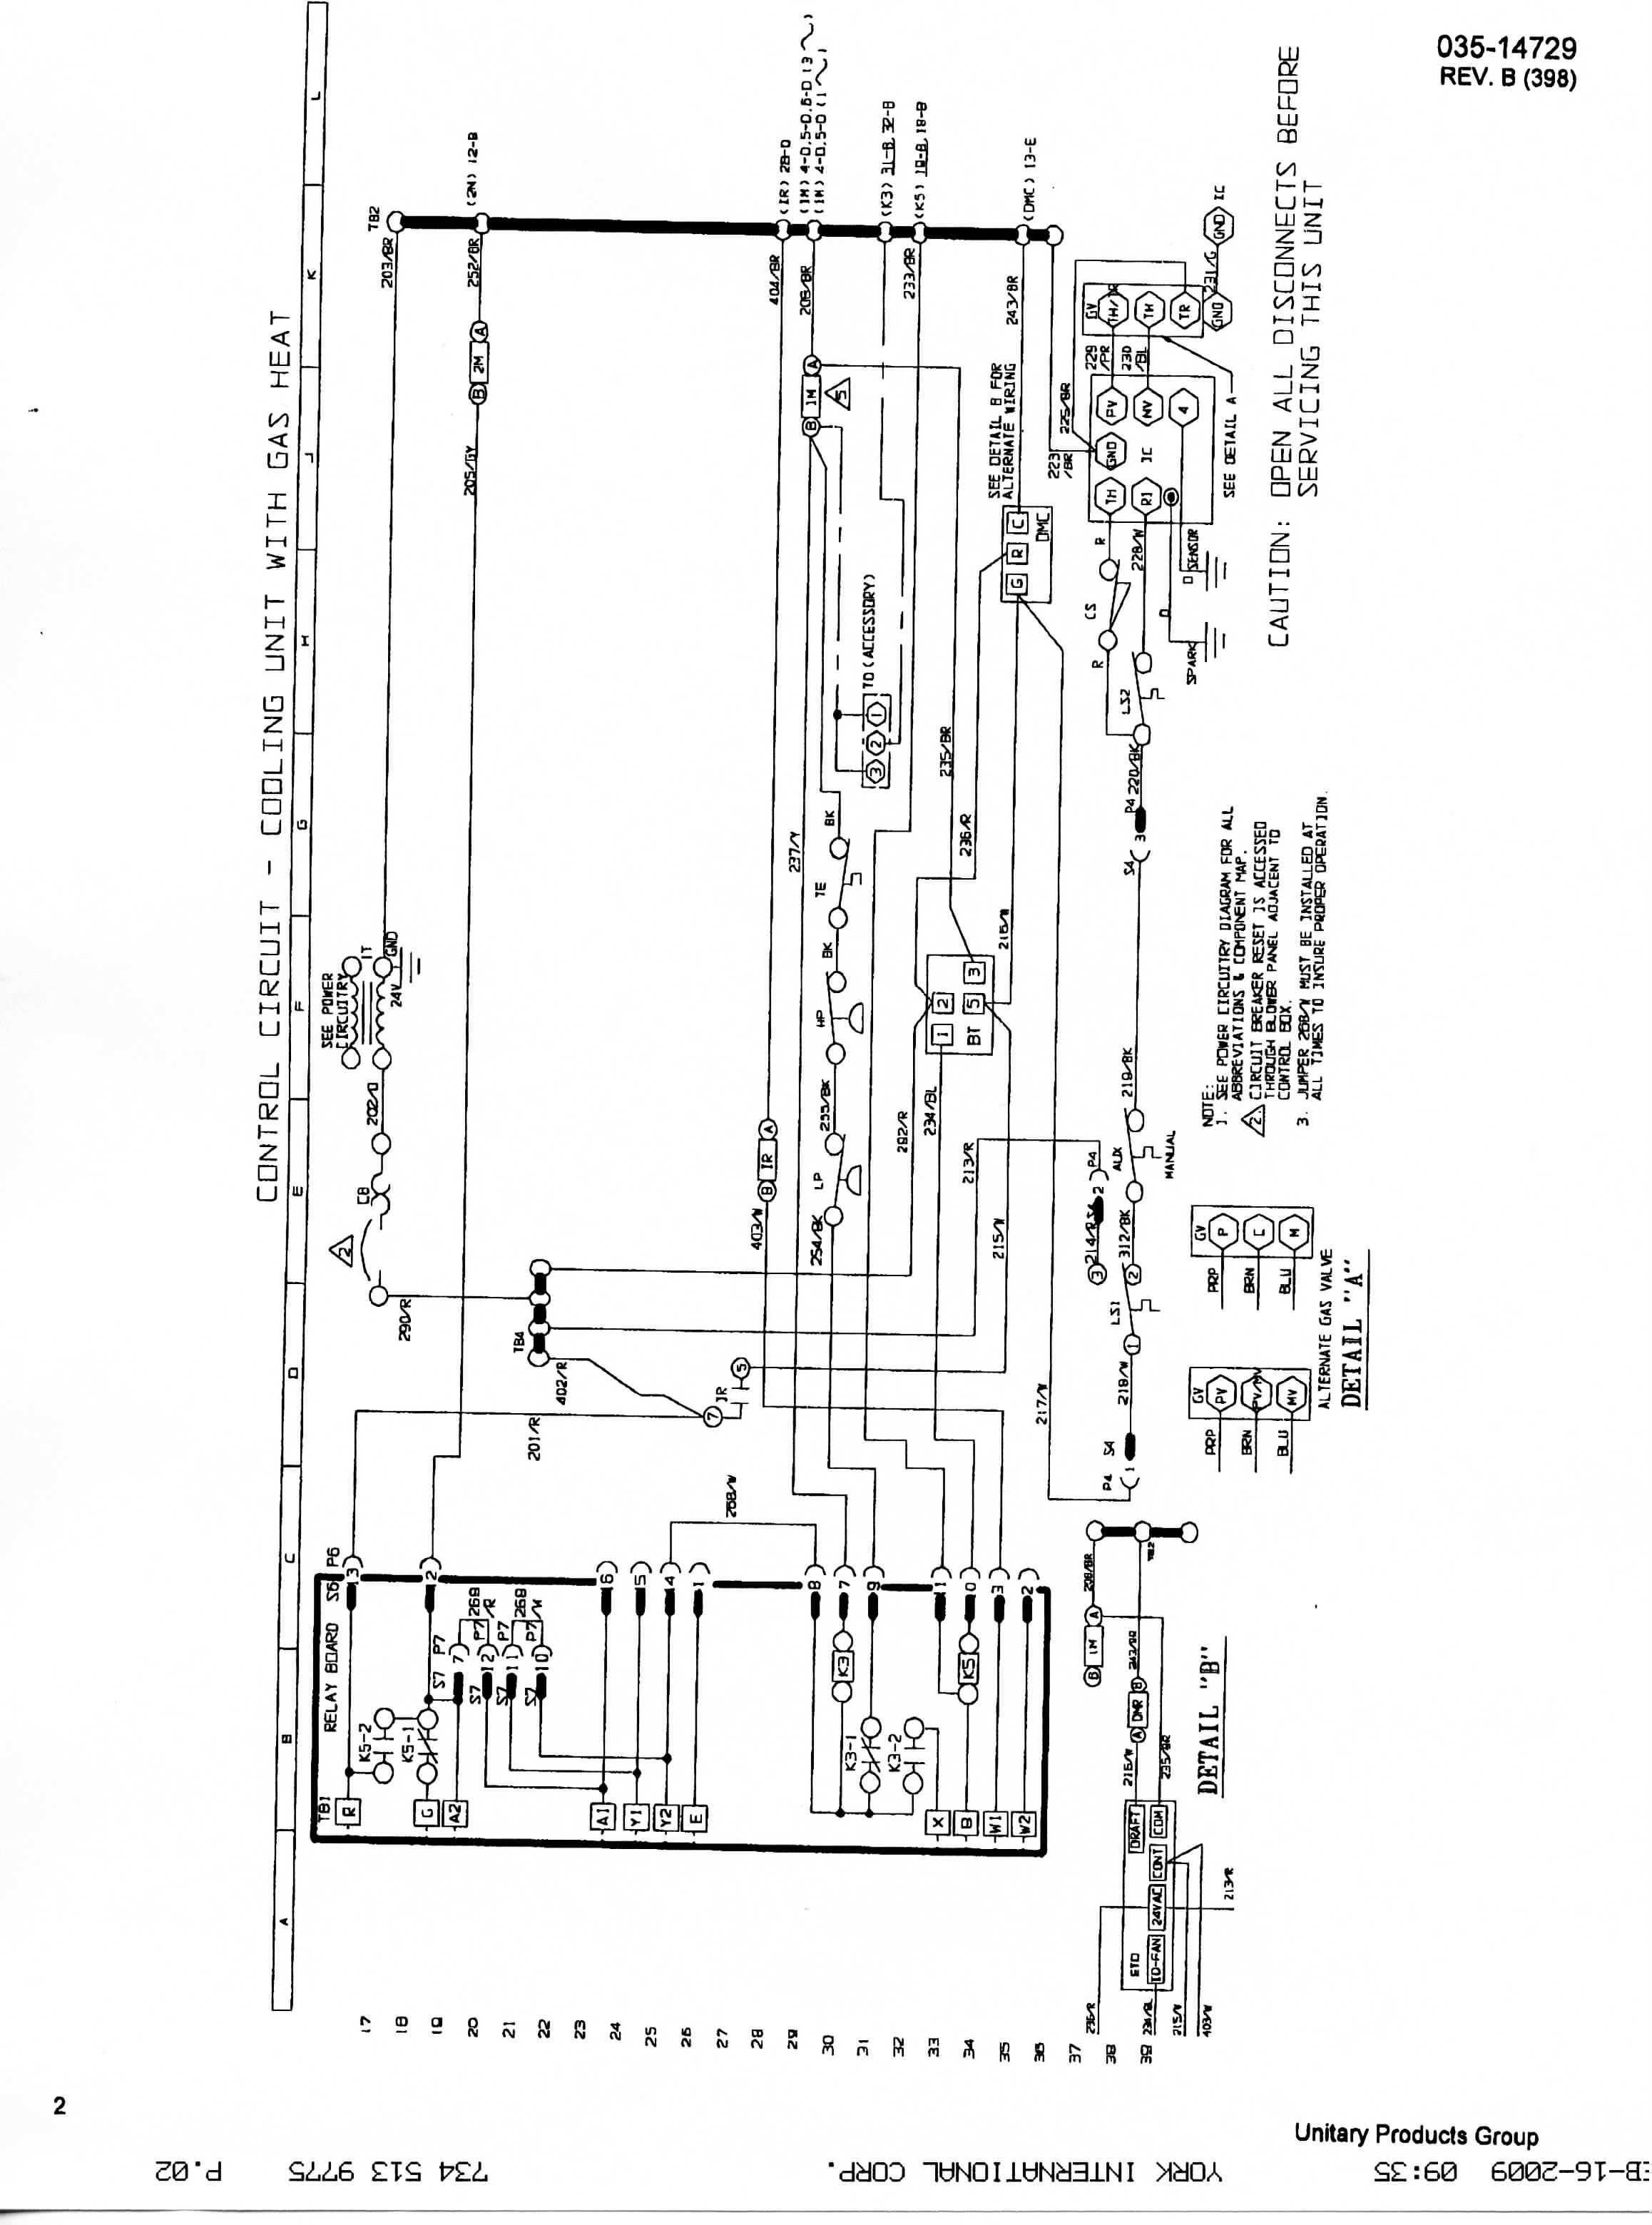 York D7cg Wiring Diagram - Wiring Diagram